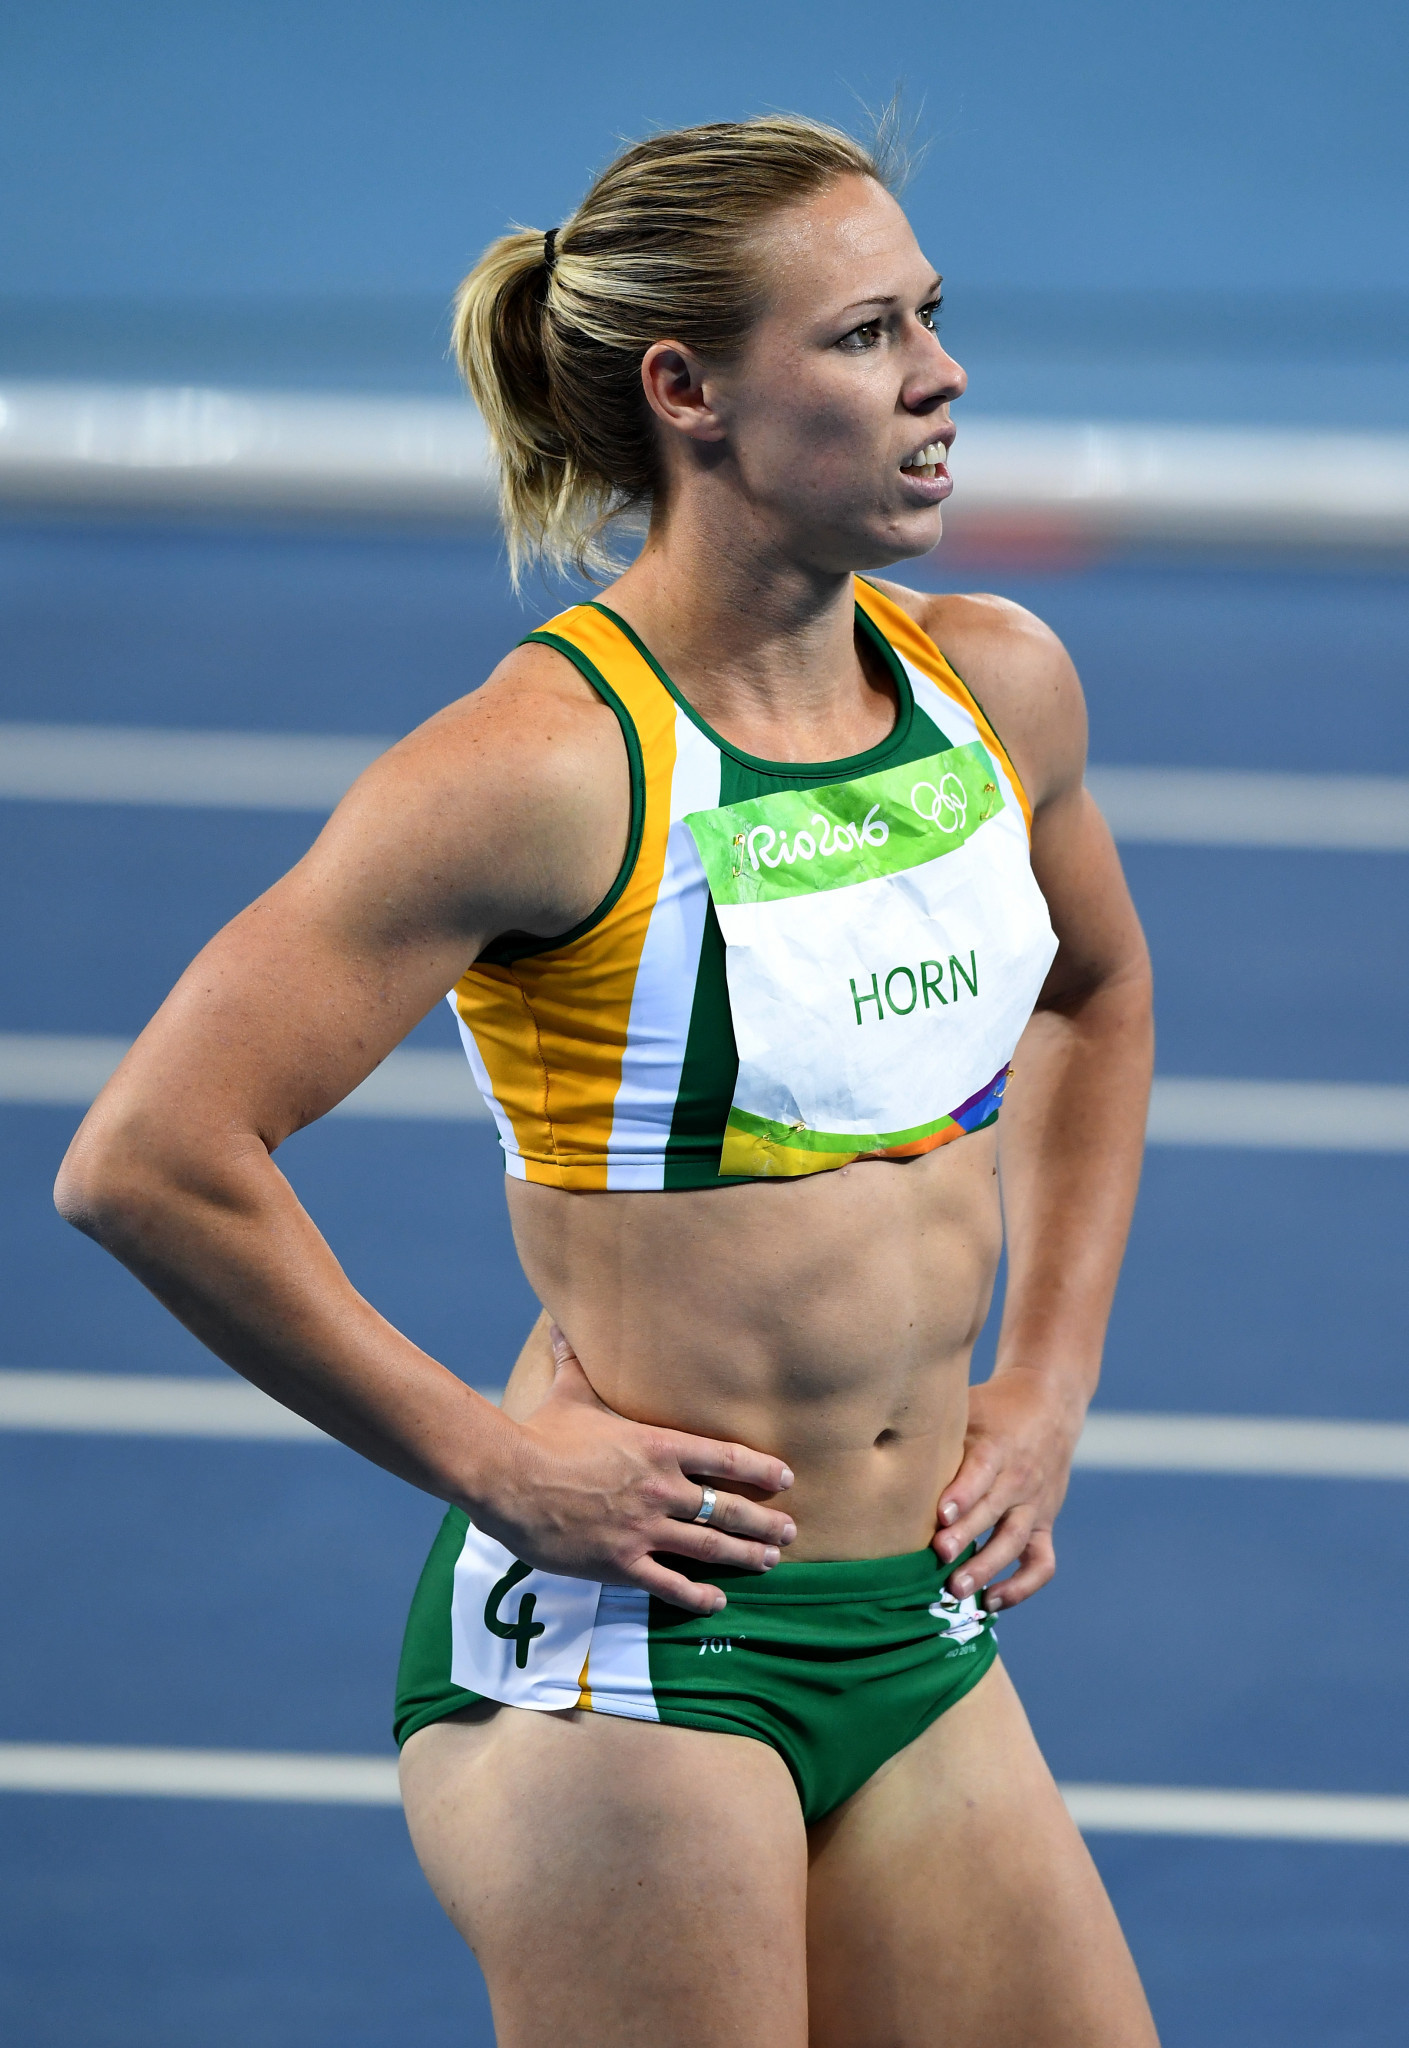 Carina Horn made the 100m semi-finals at the 2015 and 2017 World Championships ©Getty Images